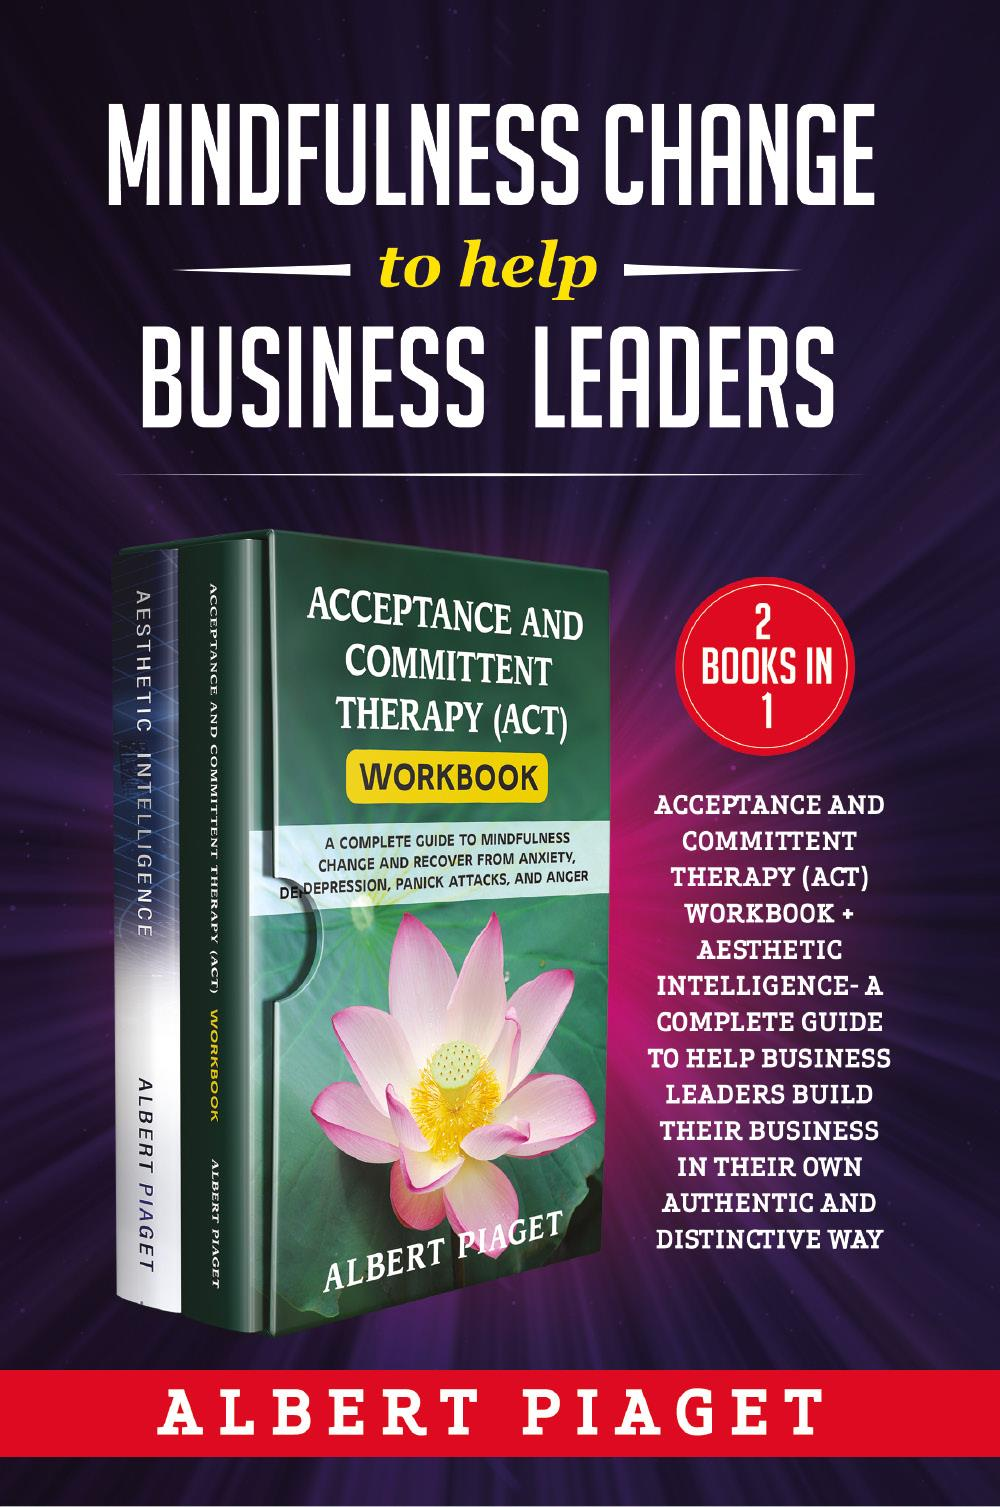 Mindfulness change to help business leaders (2 Books in 1). Acceptance and committent therapy (act) workbook + aesthetic intelligence- a complete guide to help business leaders build their business in their own authentic and distinctive way